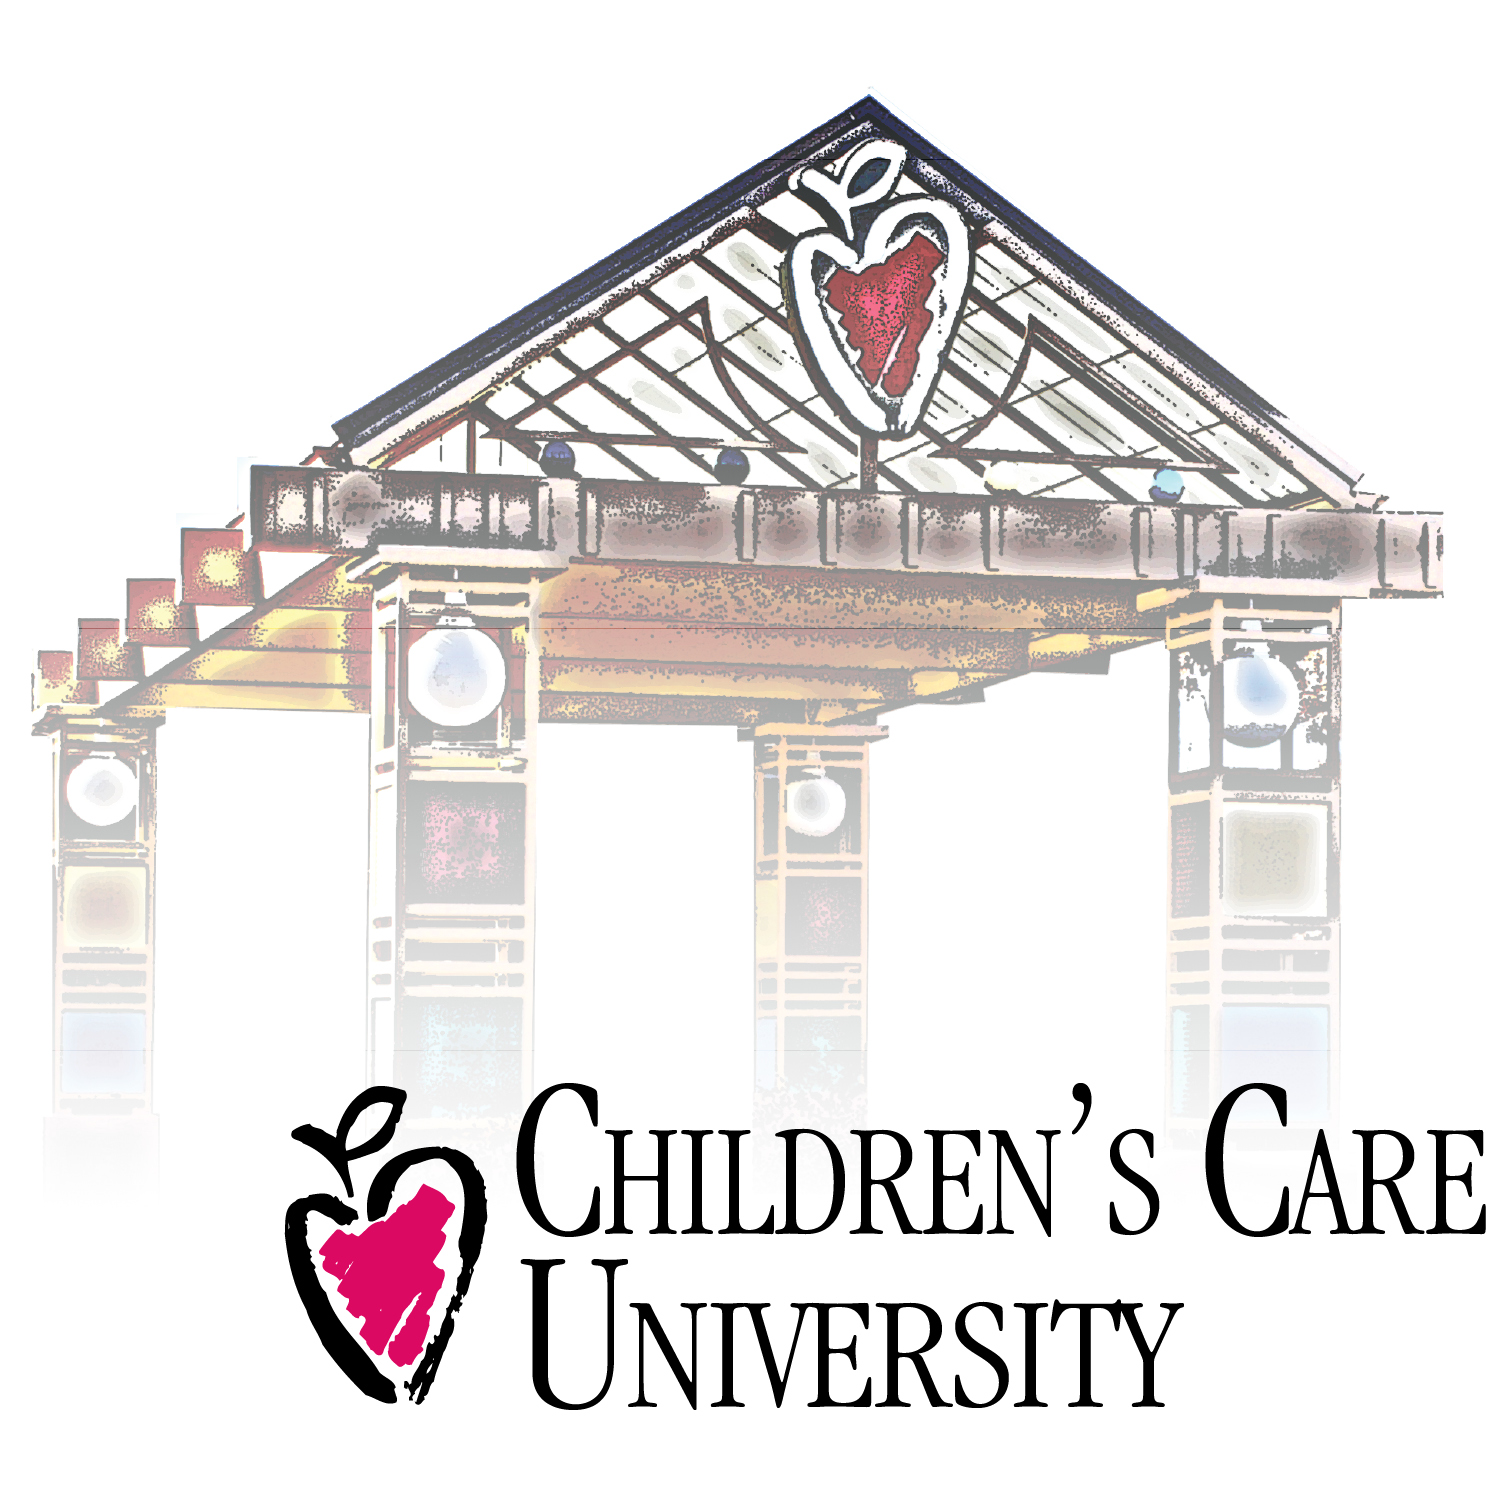 Childrens care university